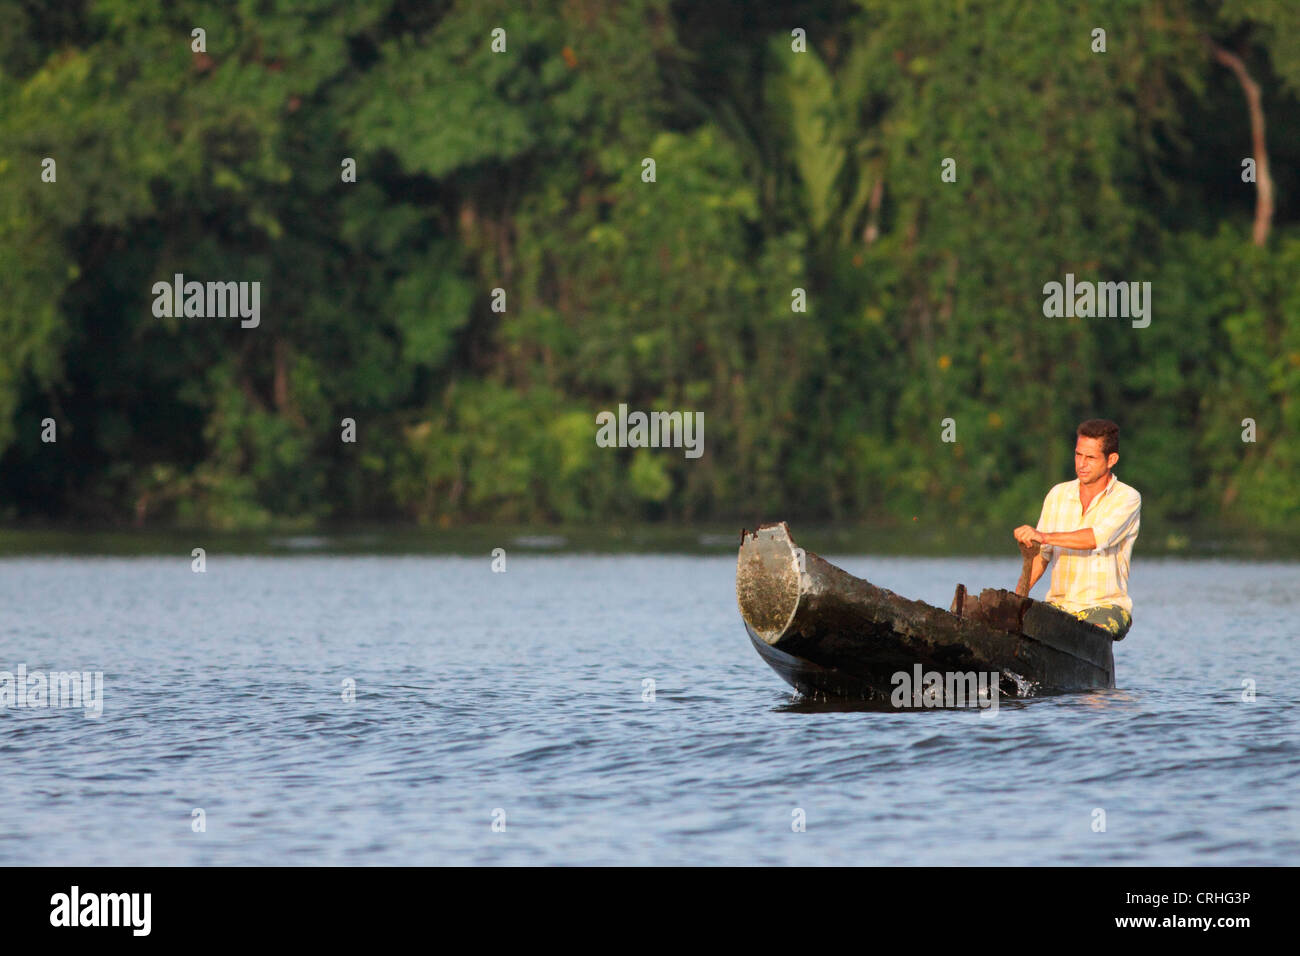 Villager in canoe on natural rainforest canal. Tortuguero National Park. Costa Rica. October 2011. - Stock Image